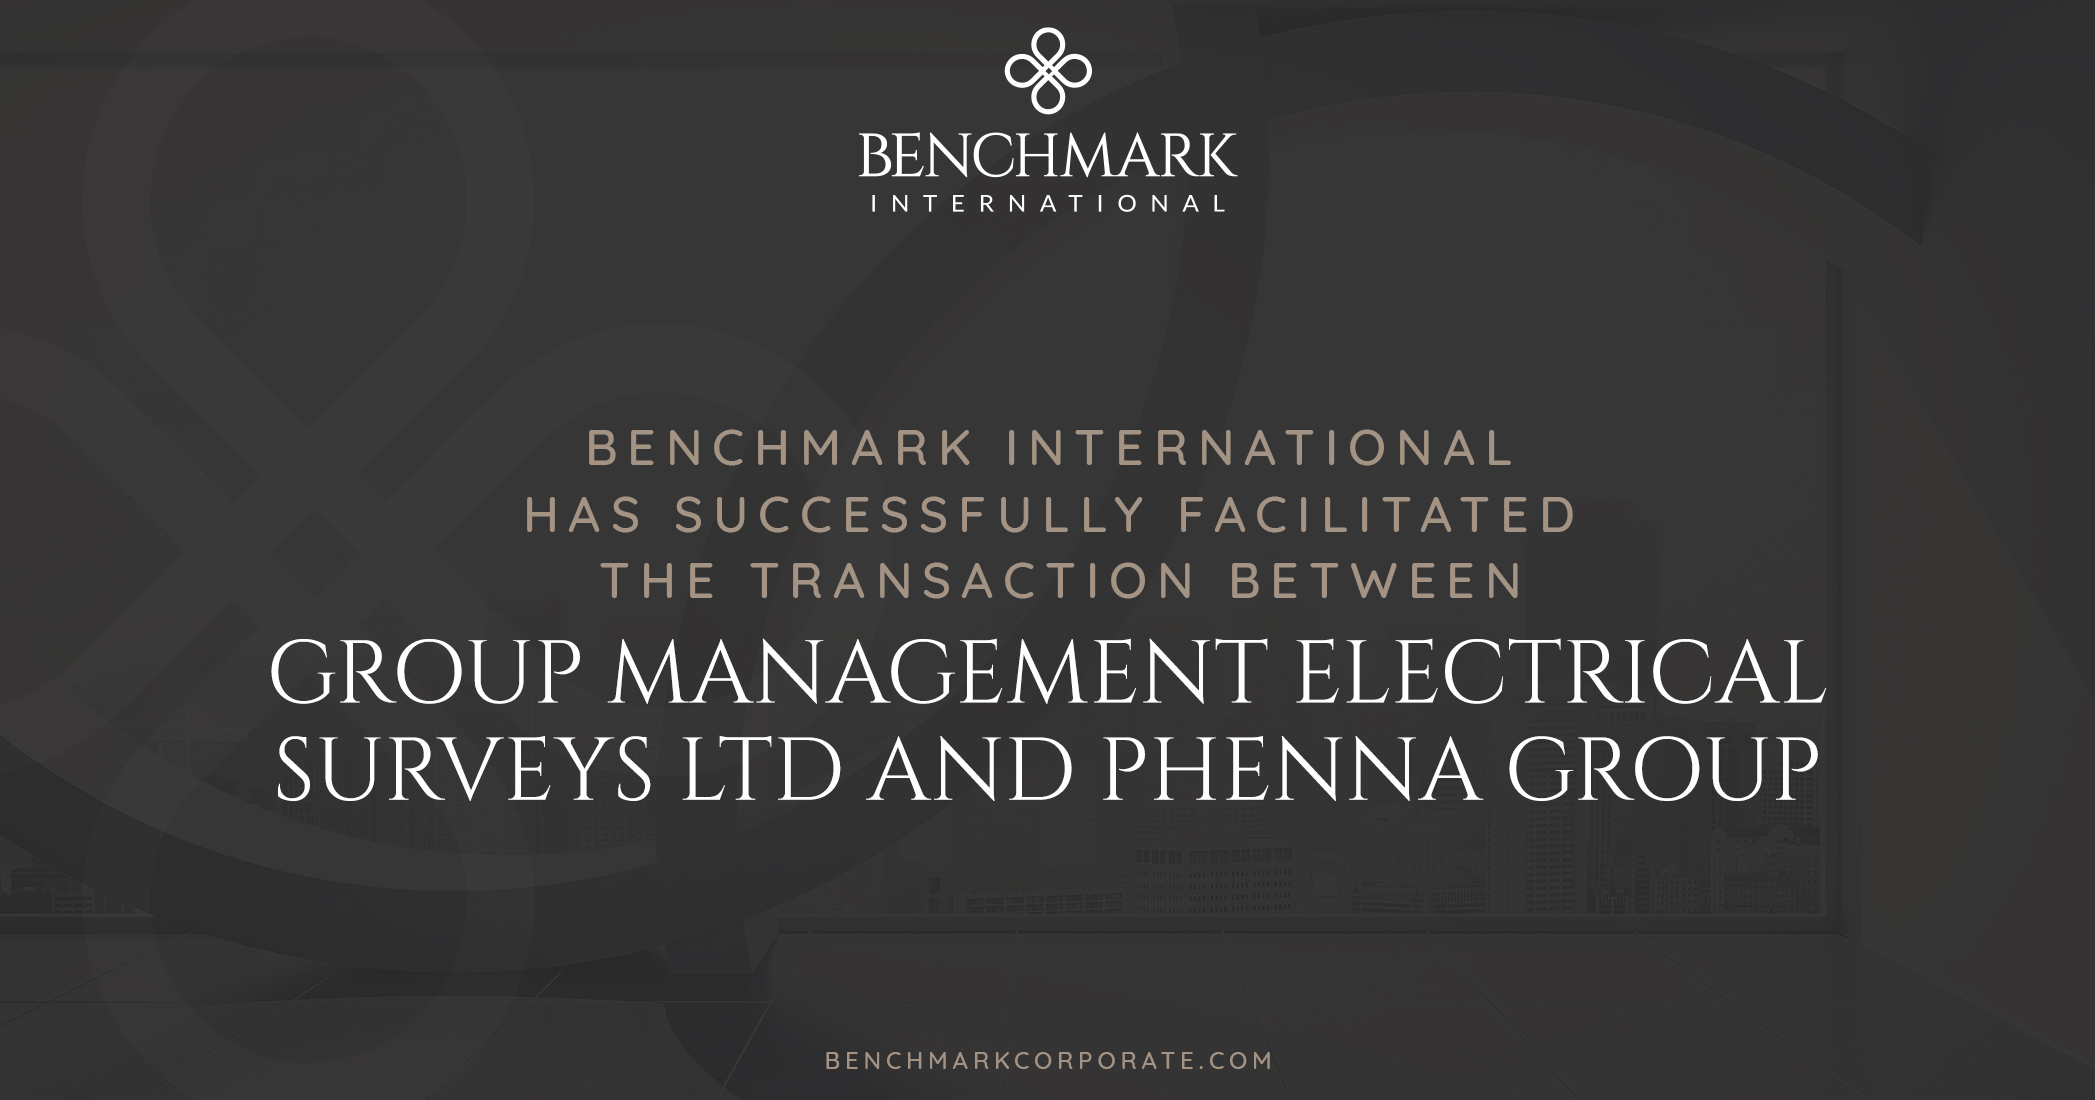 Benchmark International has Successfully Advised the Shareholder of Group Management Electrical Surveys Ltd on the Sale to Phenna Group